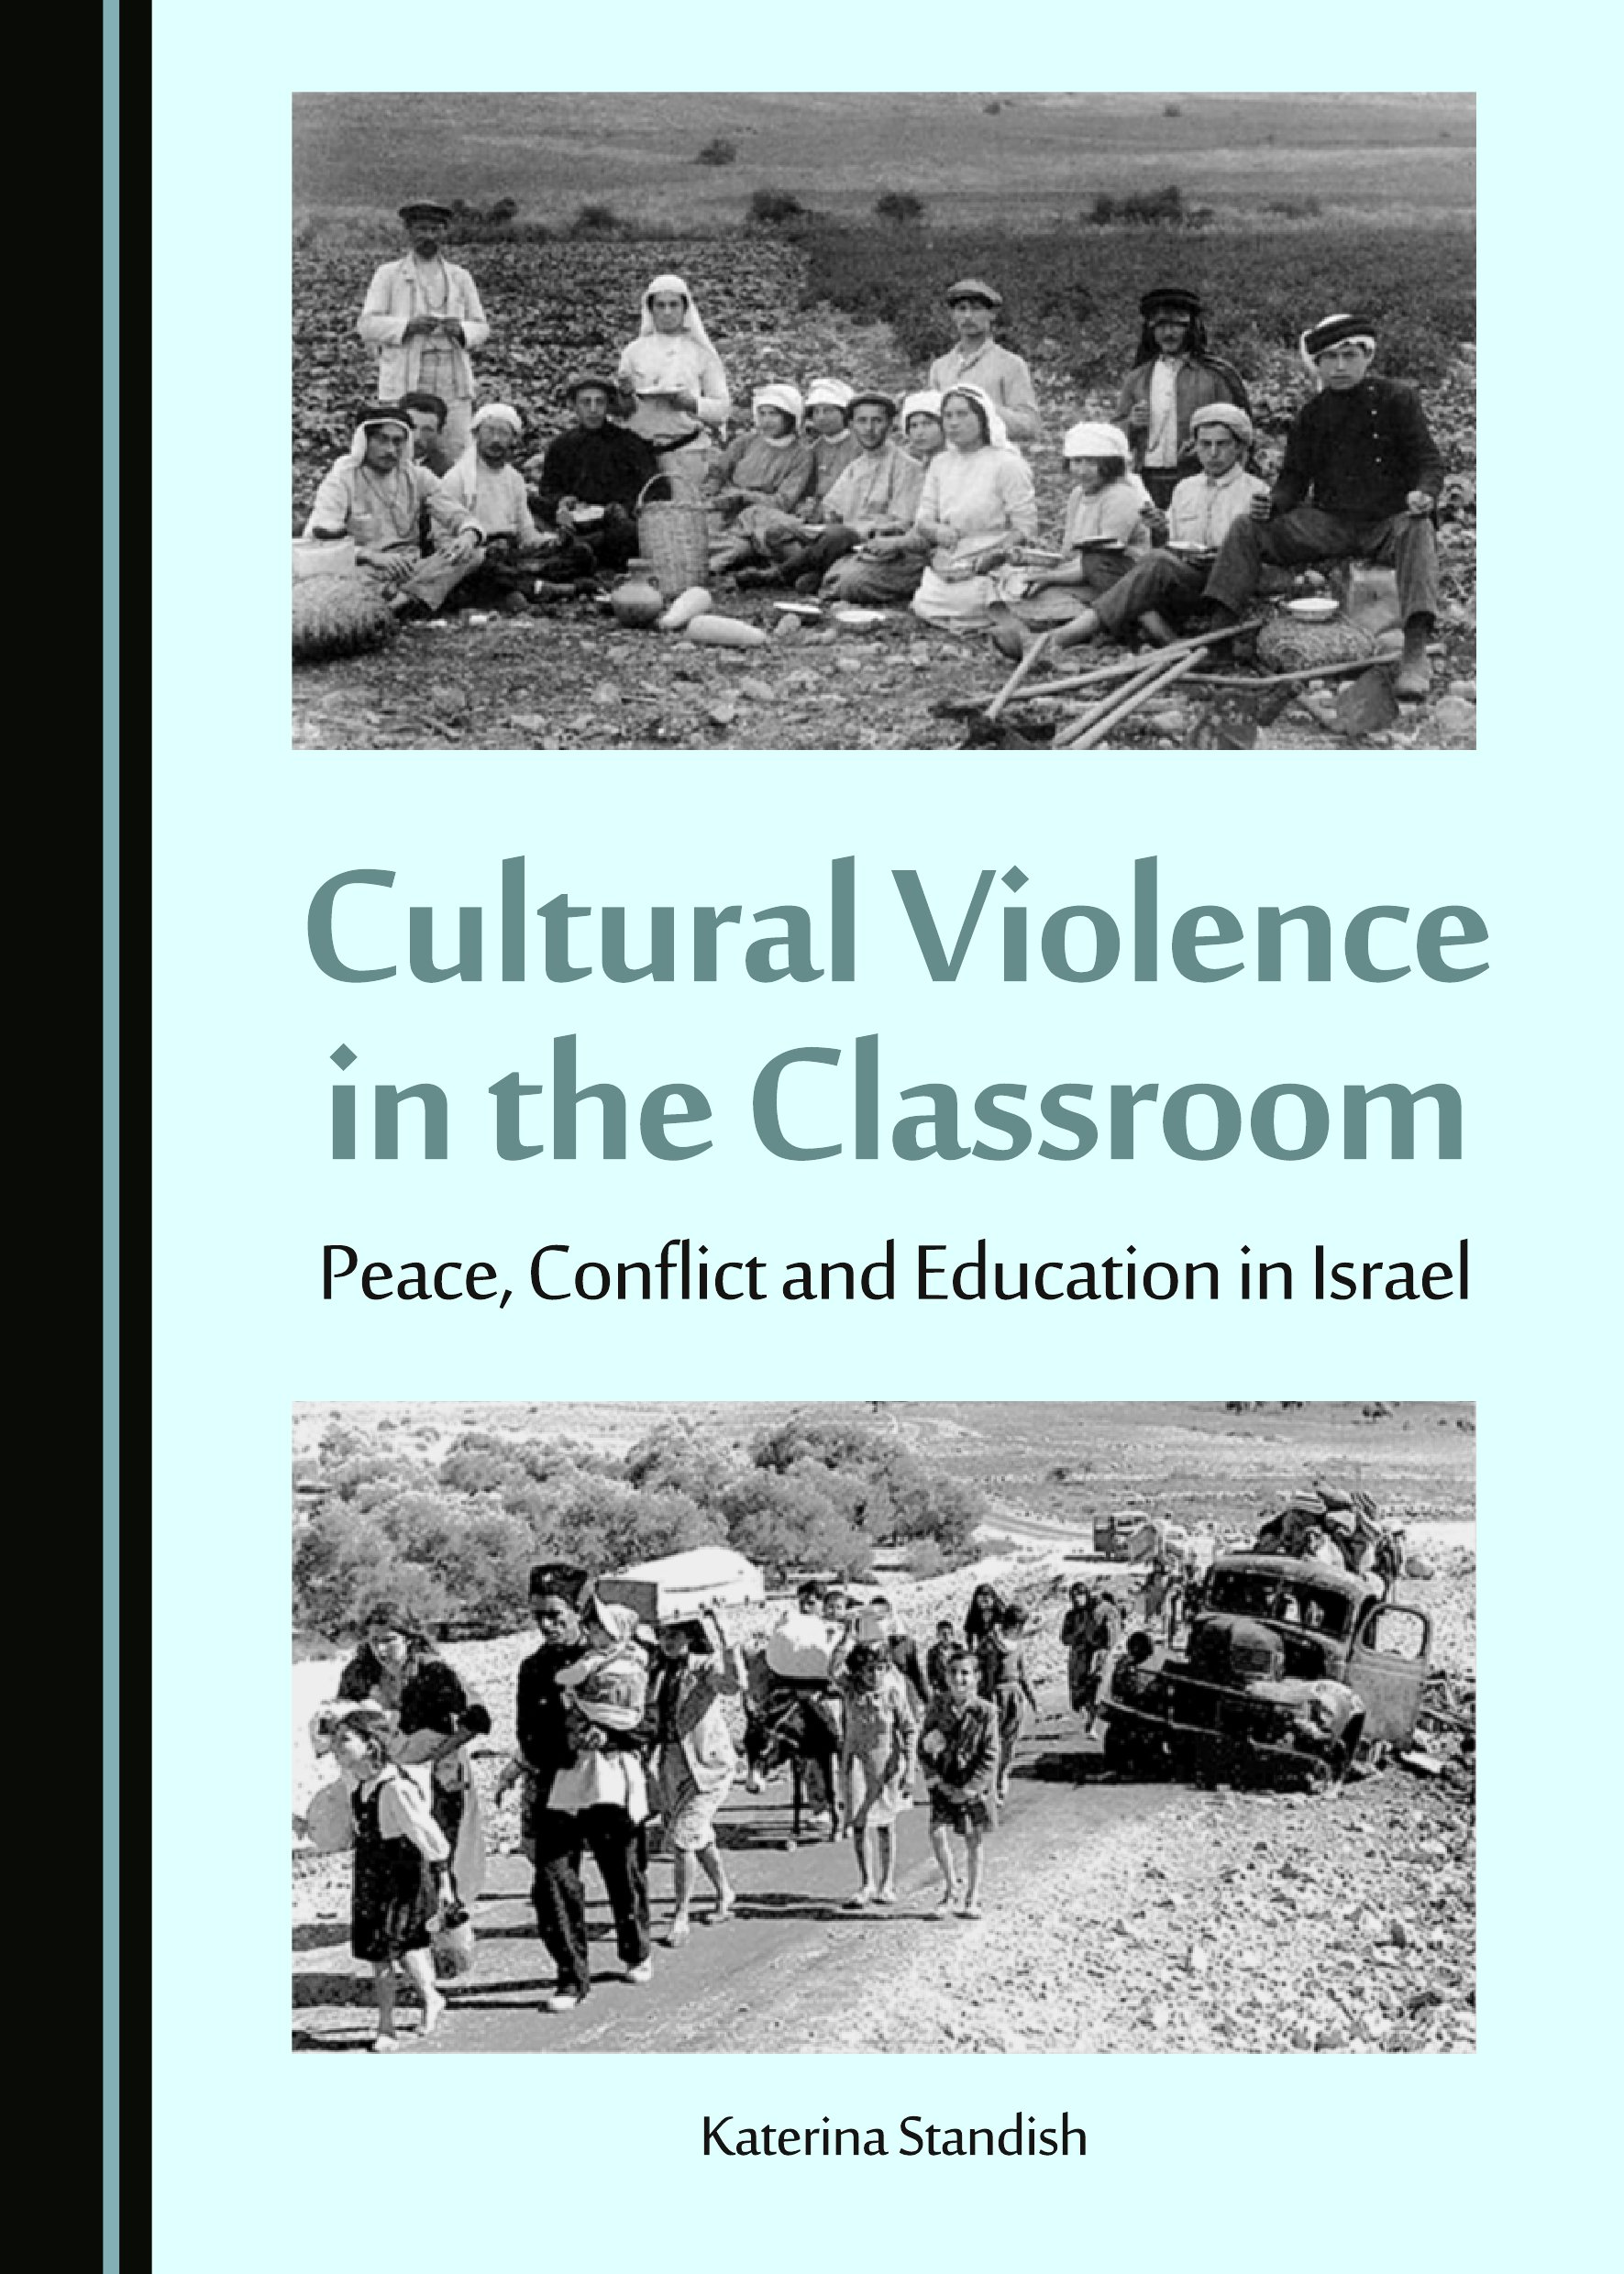 Cultural Violence in the Classroom: Peace, Conflict and Education in Israel